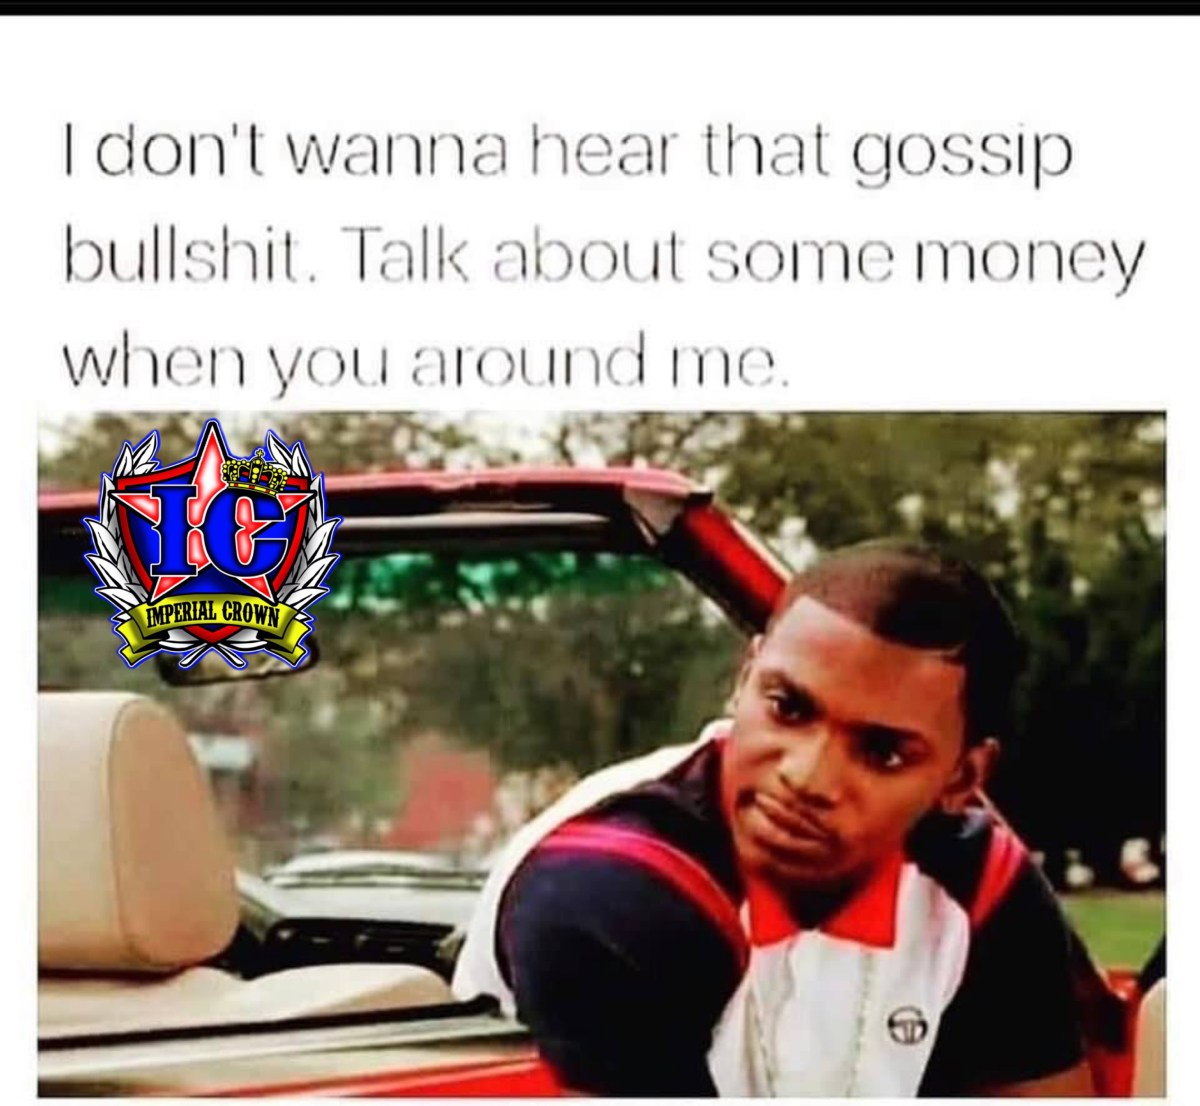 I don't wanna hear that gossip bullshit, talk about some money when you around me.